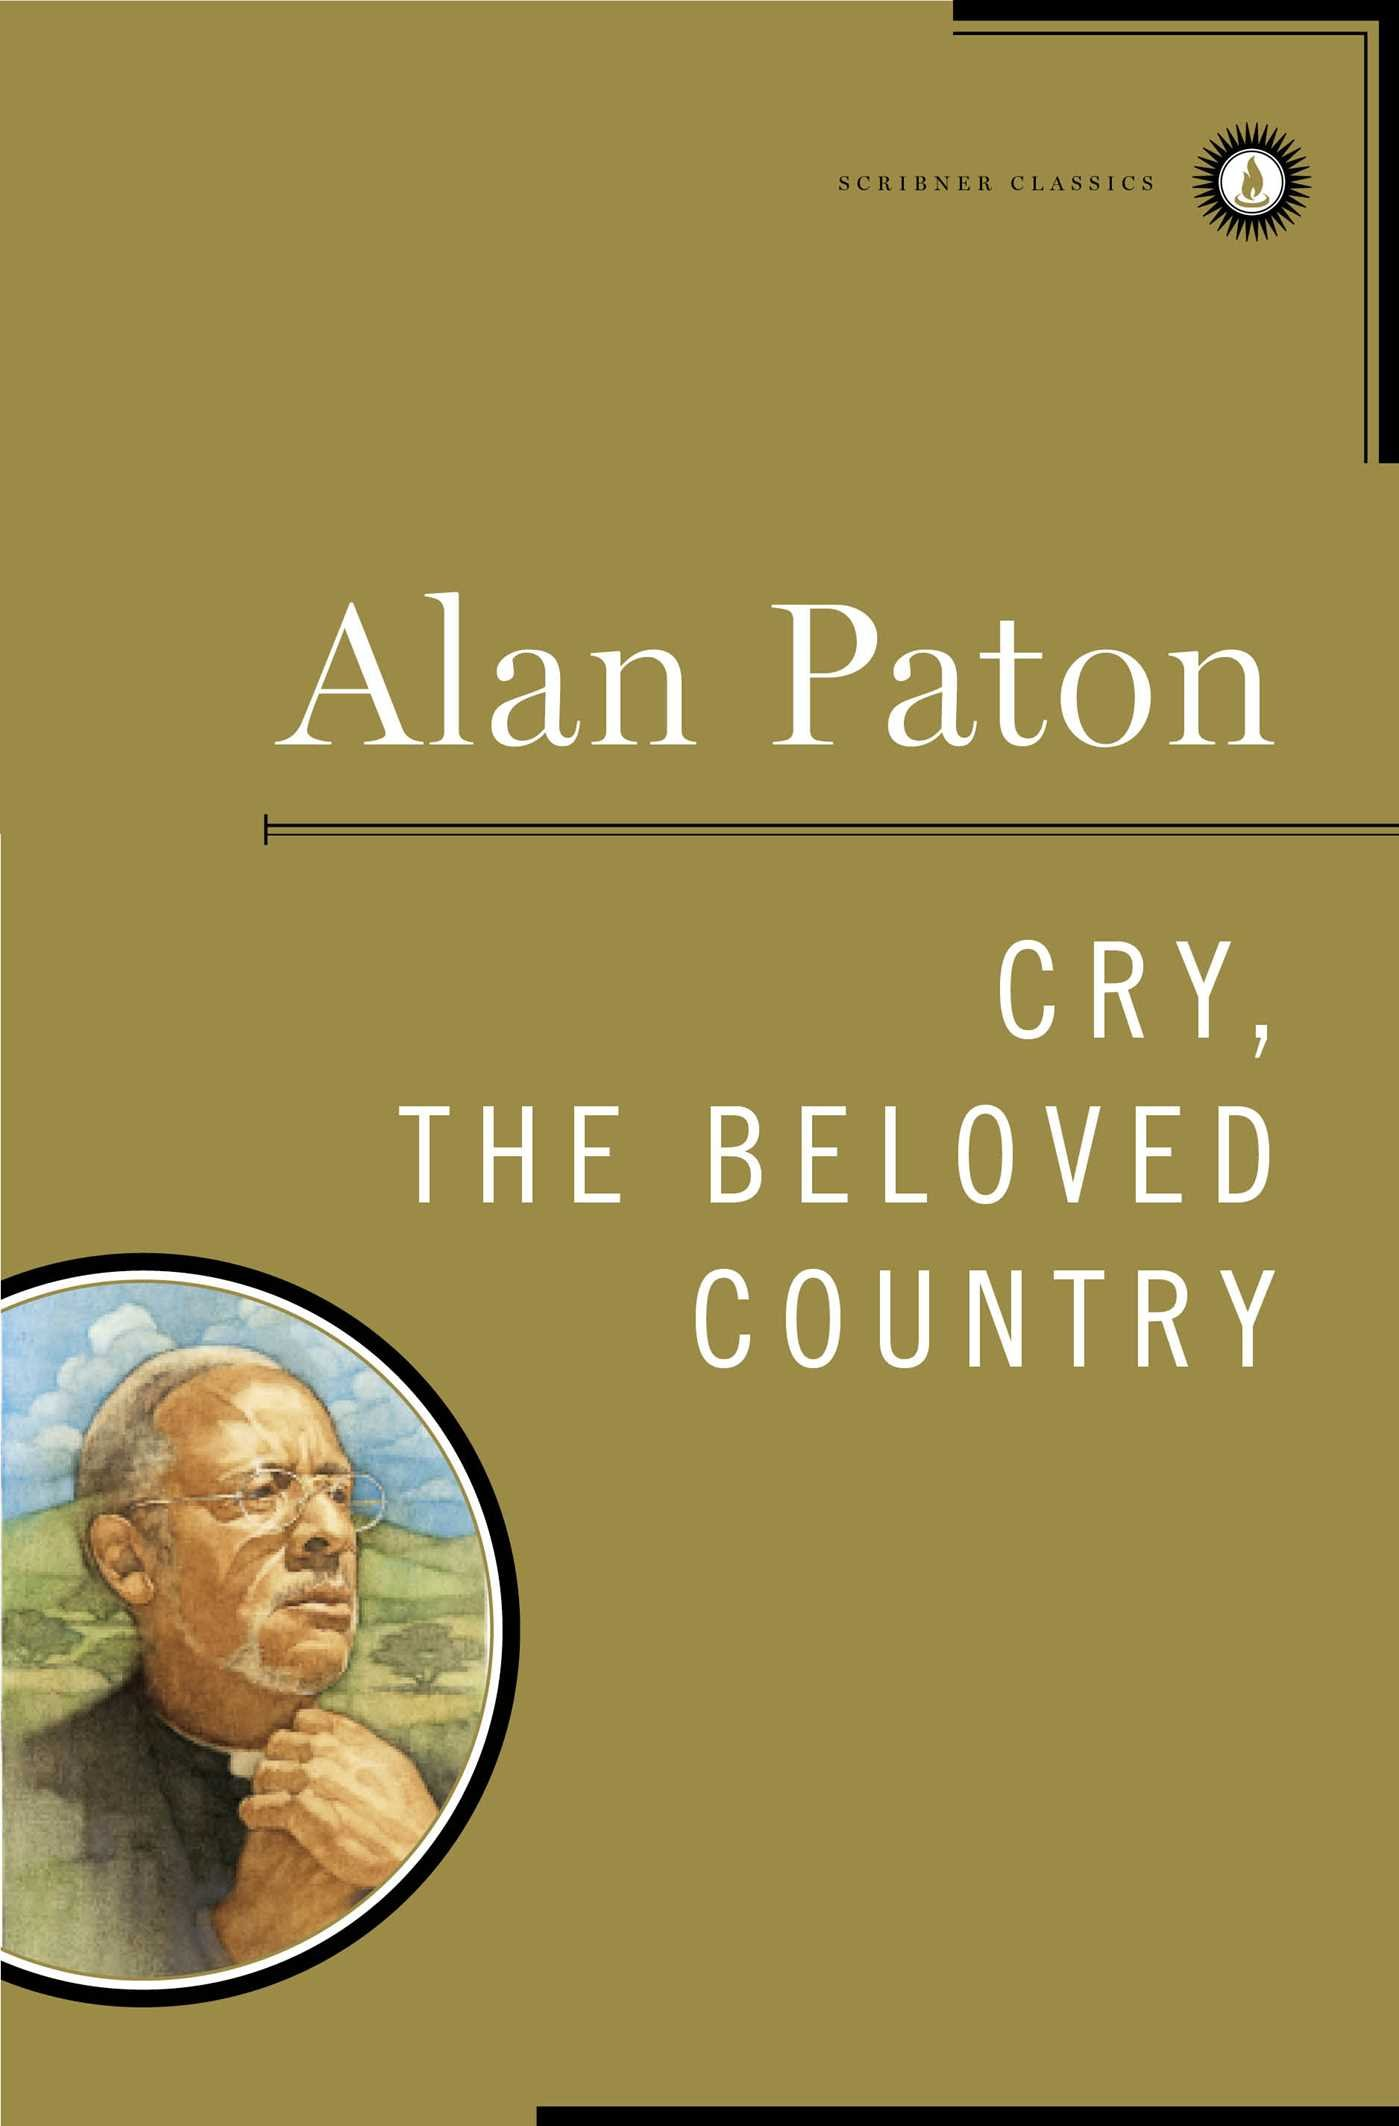 Alan Paton's Cry the Beloved Country